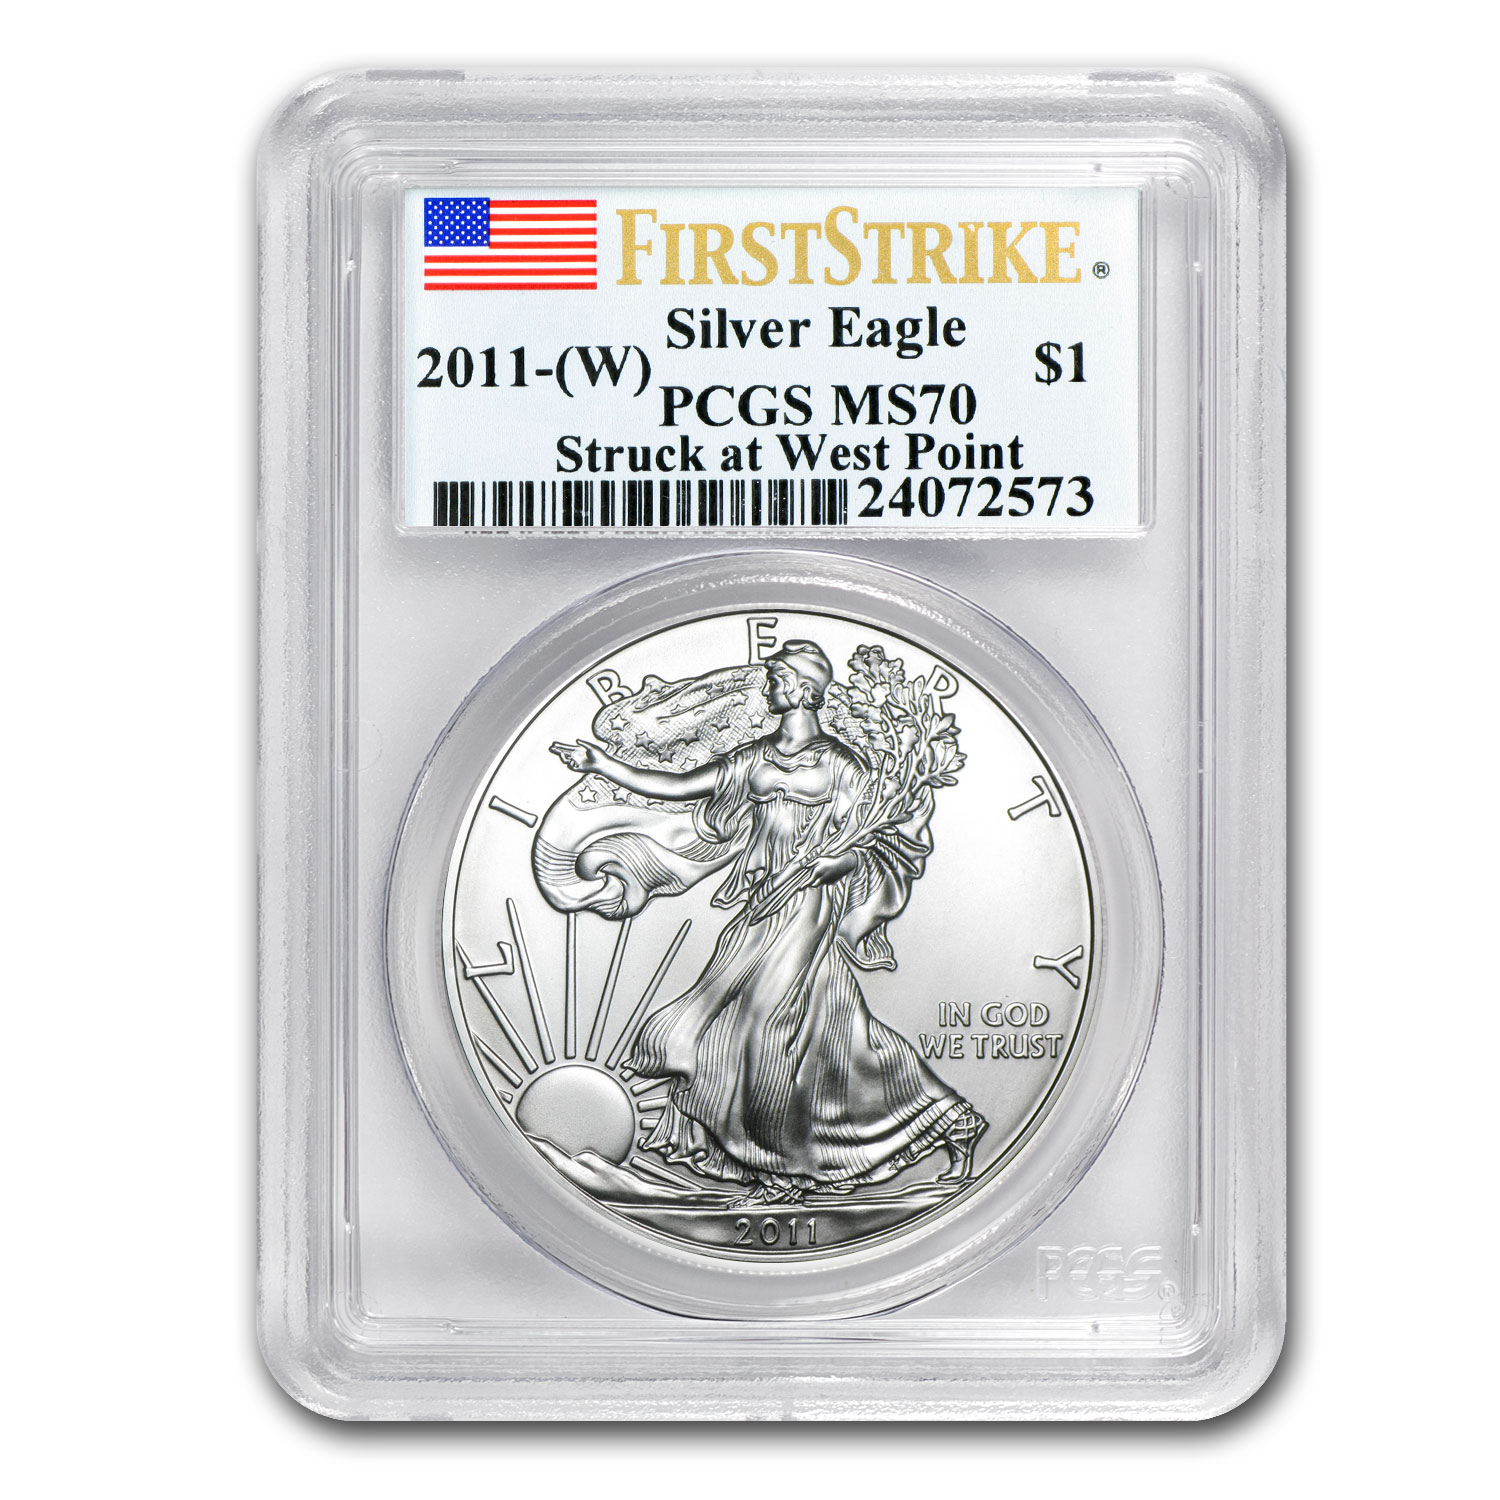 2011 (W) Silver Eagle MS-70 PCGS (First Strike, WP Label)